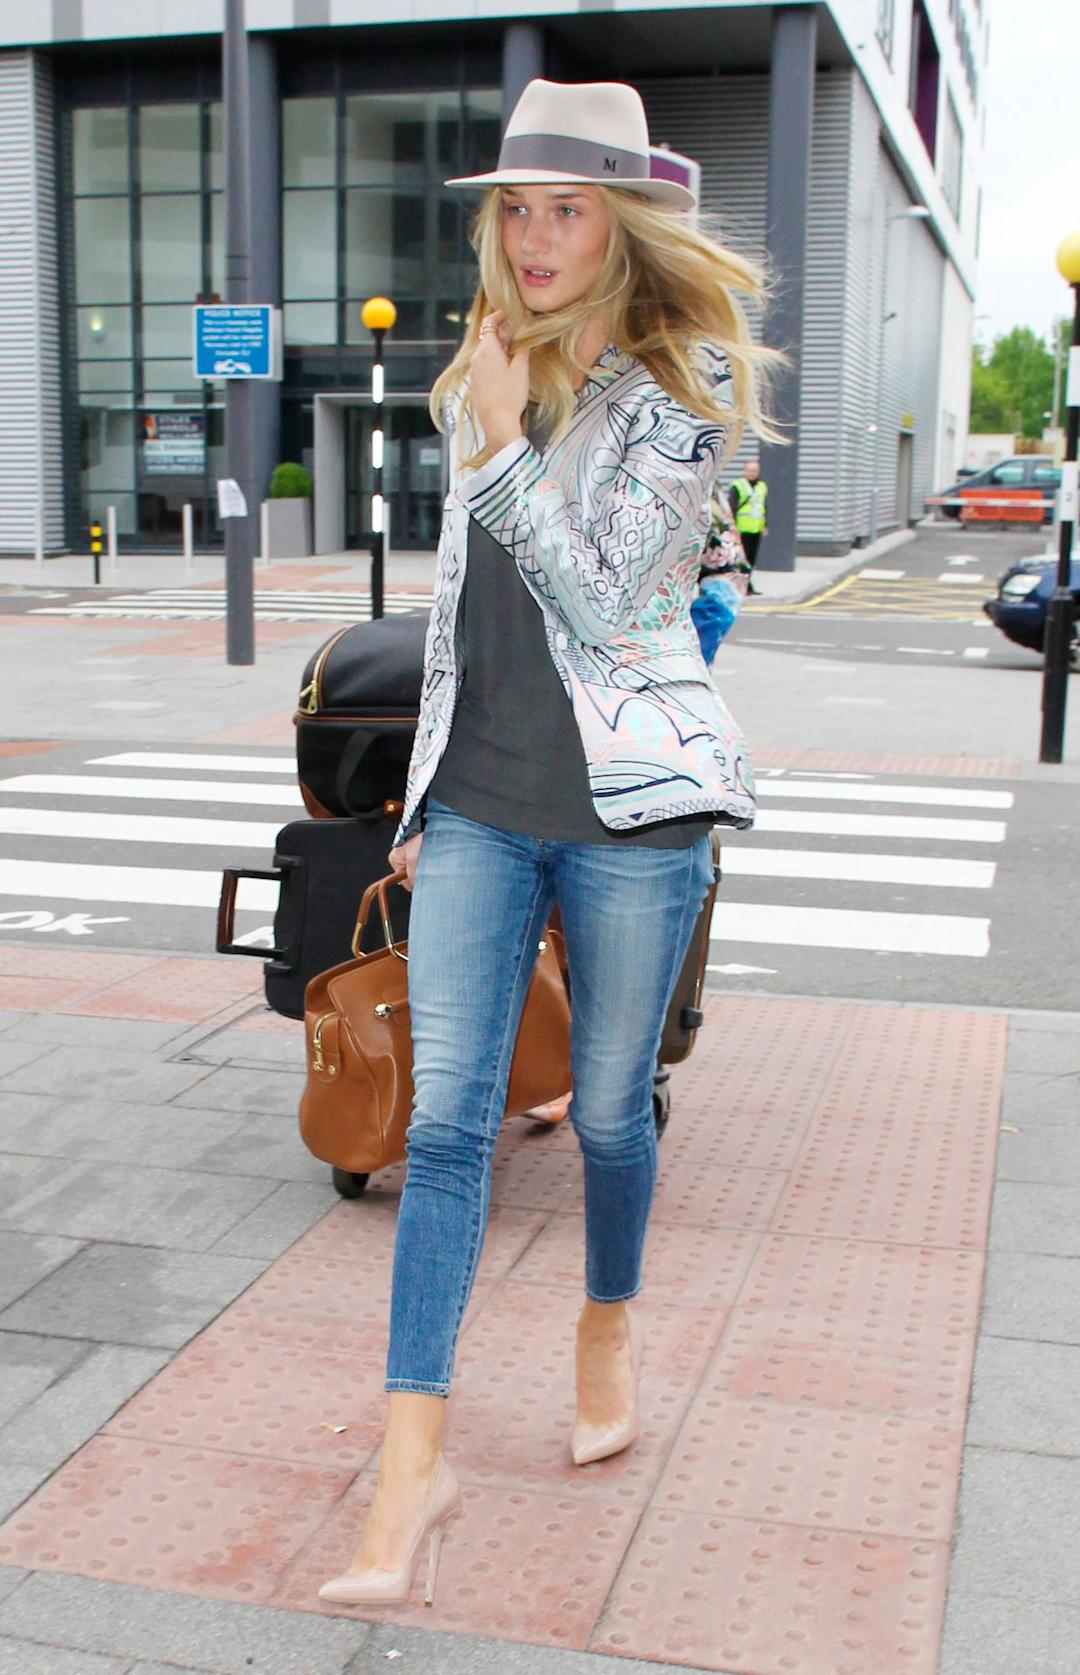 The Best Celeb Travel Style to Inspire Your Trip Home